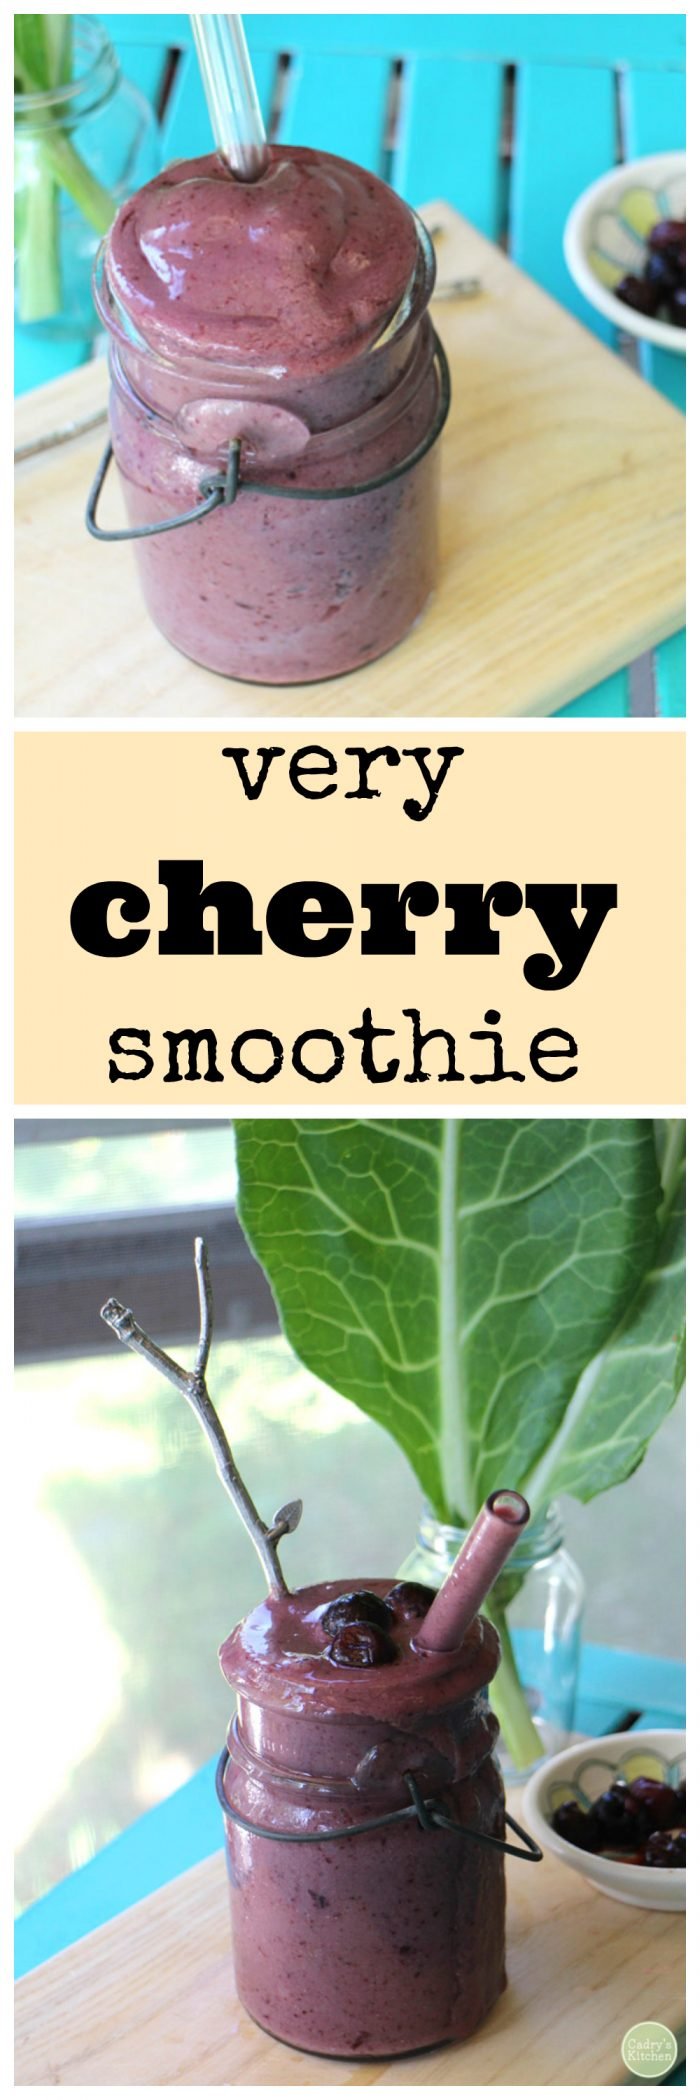 Cherry smoothie in glass jar with collard leaves + text.